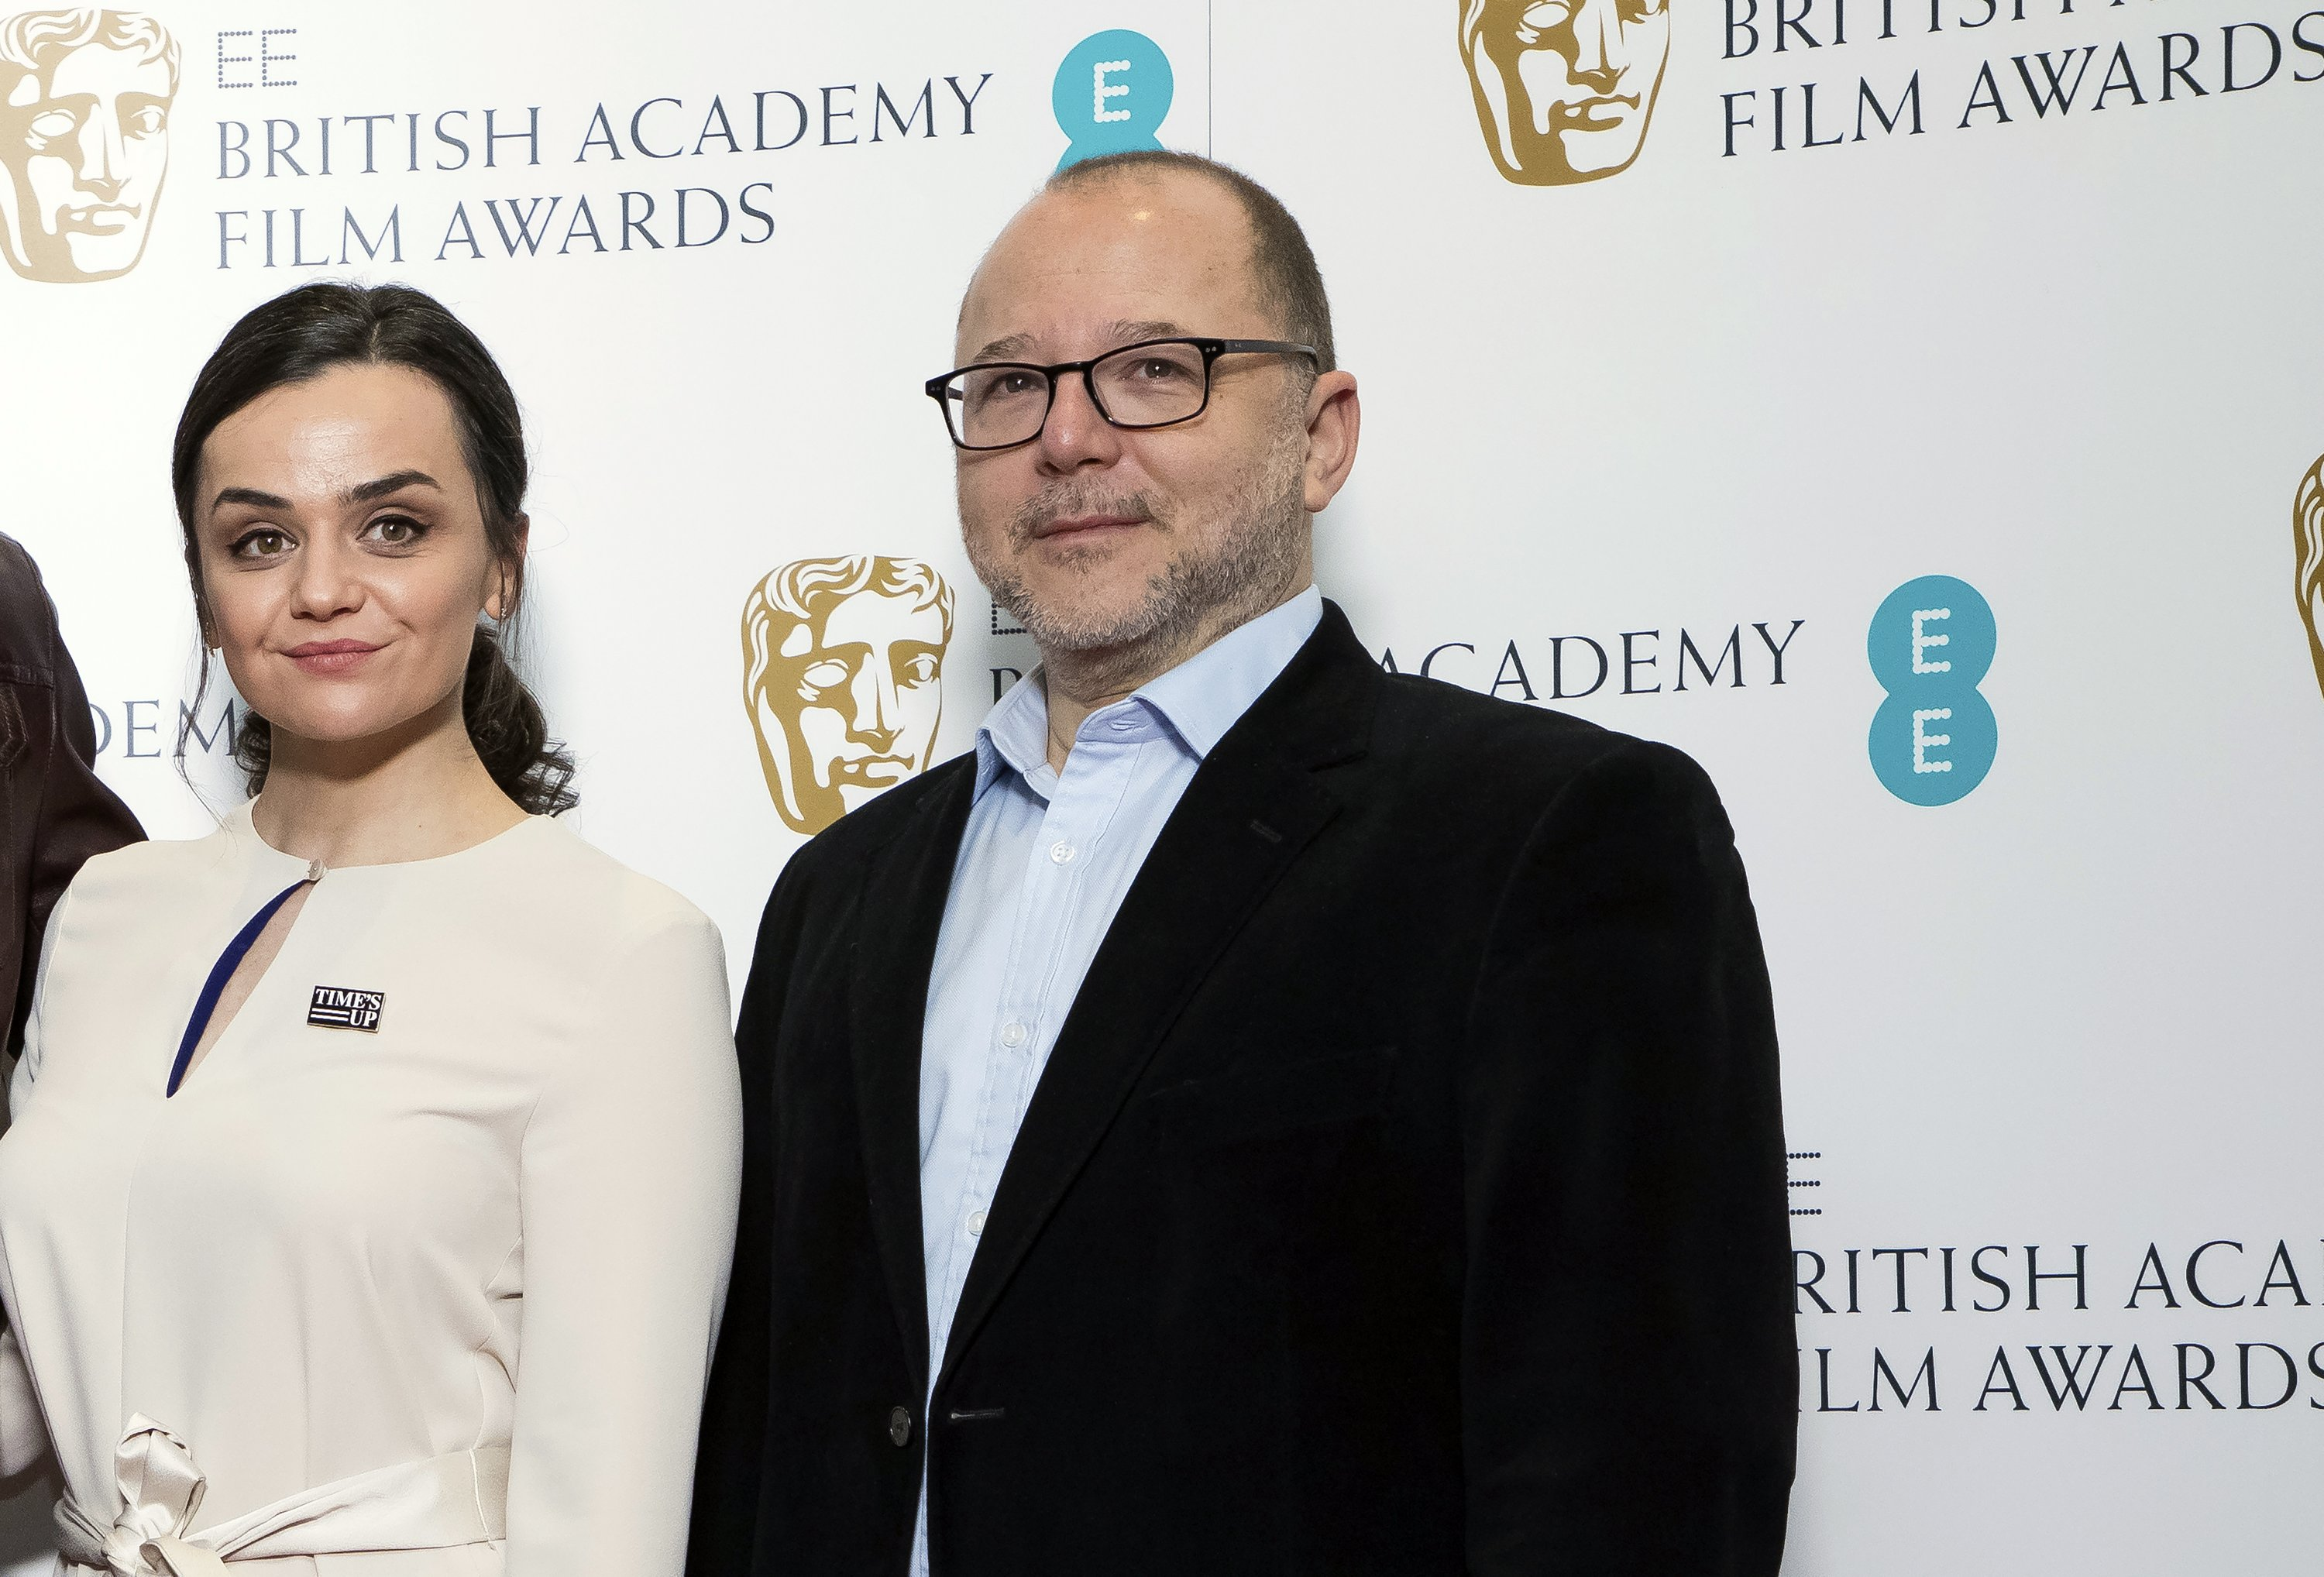 British Academy Film Awards change rules to boost diversity thumbnail